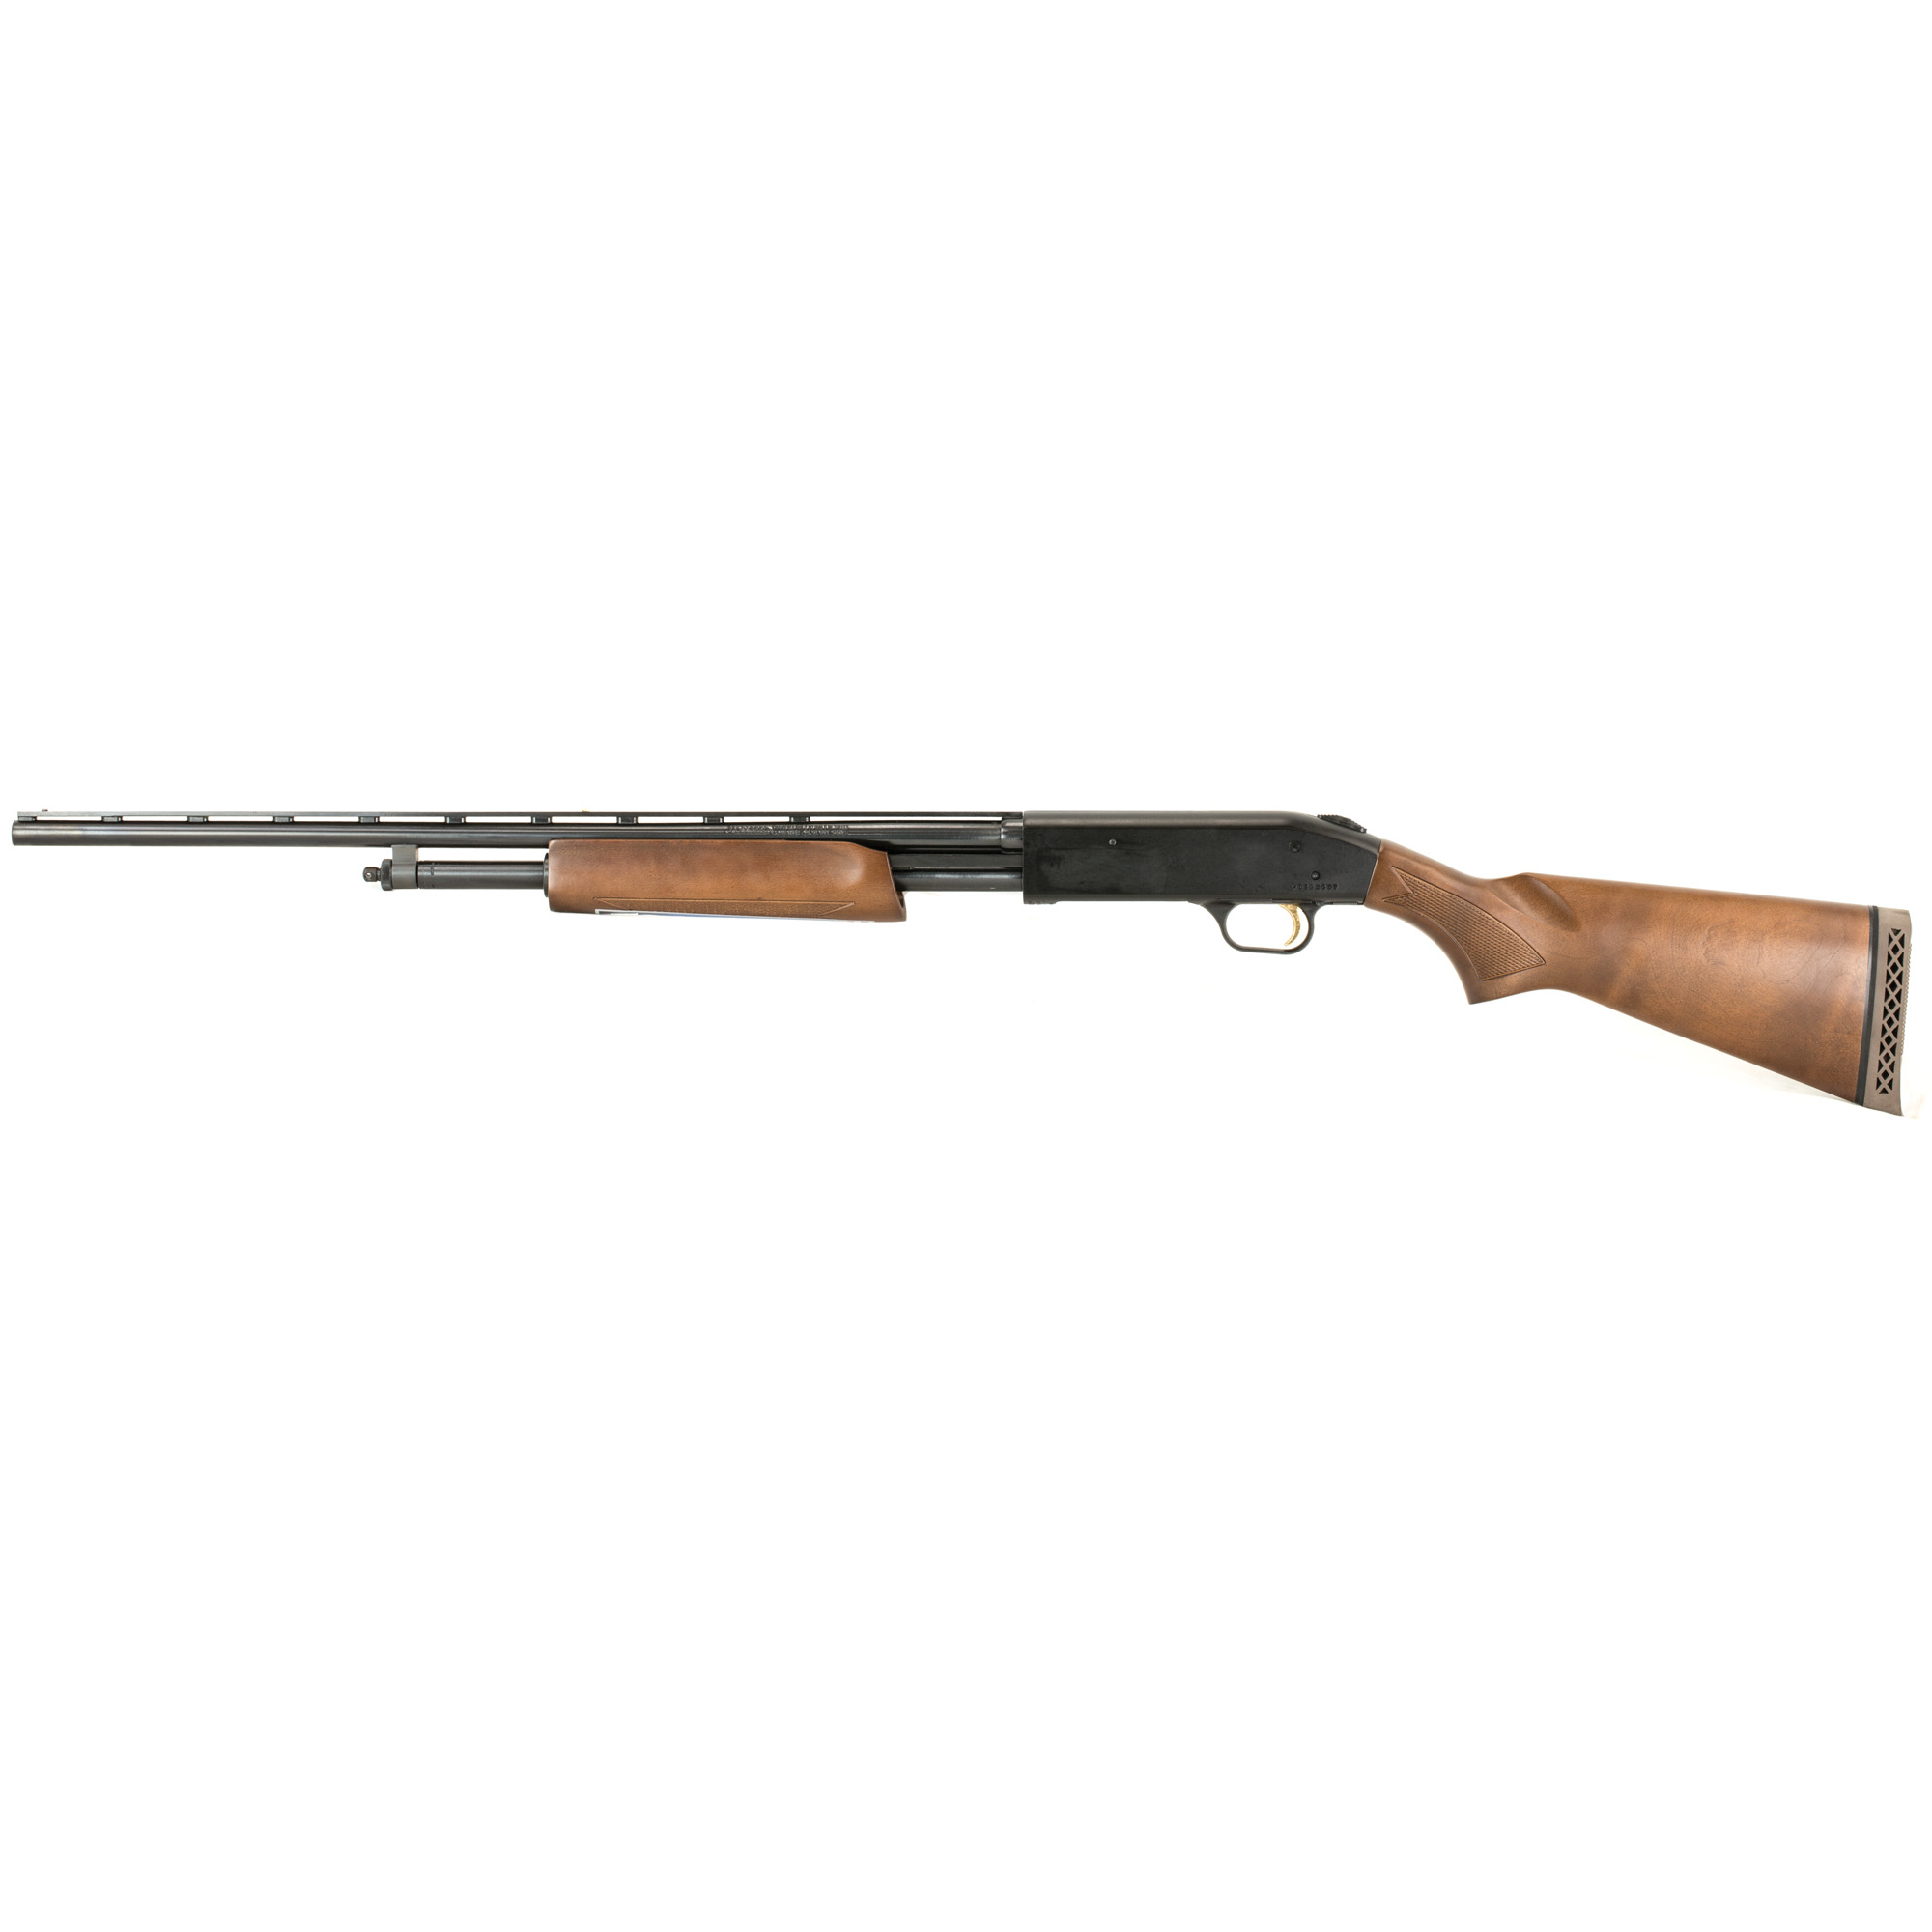 """After over 50 years and over 10 million and counting"""" the most prolific and reliable shotgun in the world is also the most versatile shotgun available. There is a Mossberg 500 to fit every season"""" every application"""" and every user."""